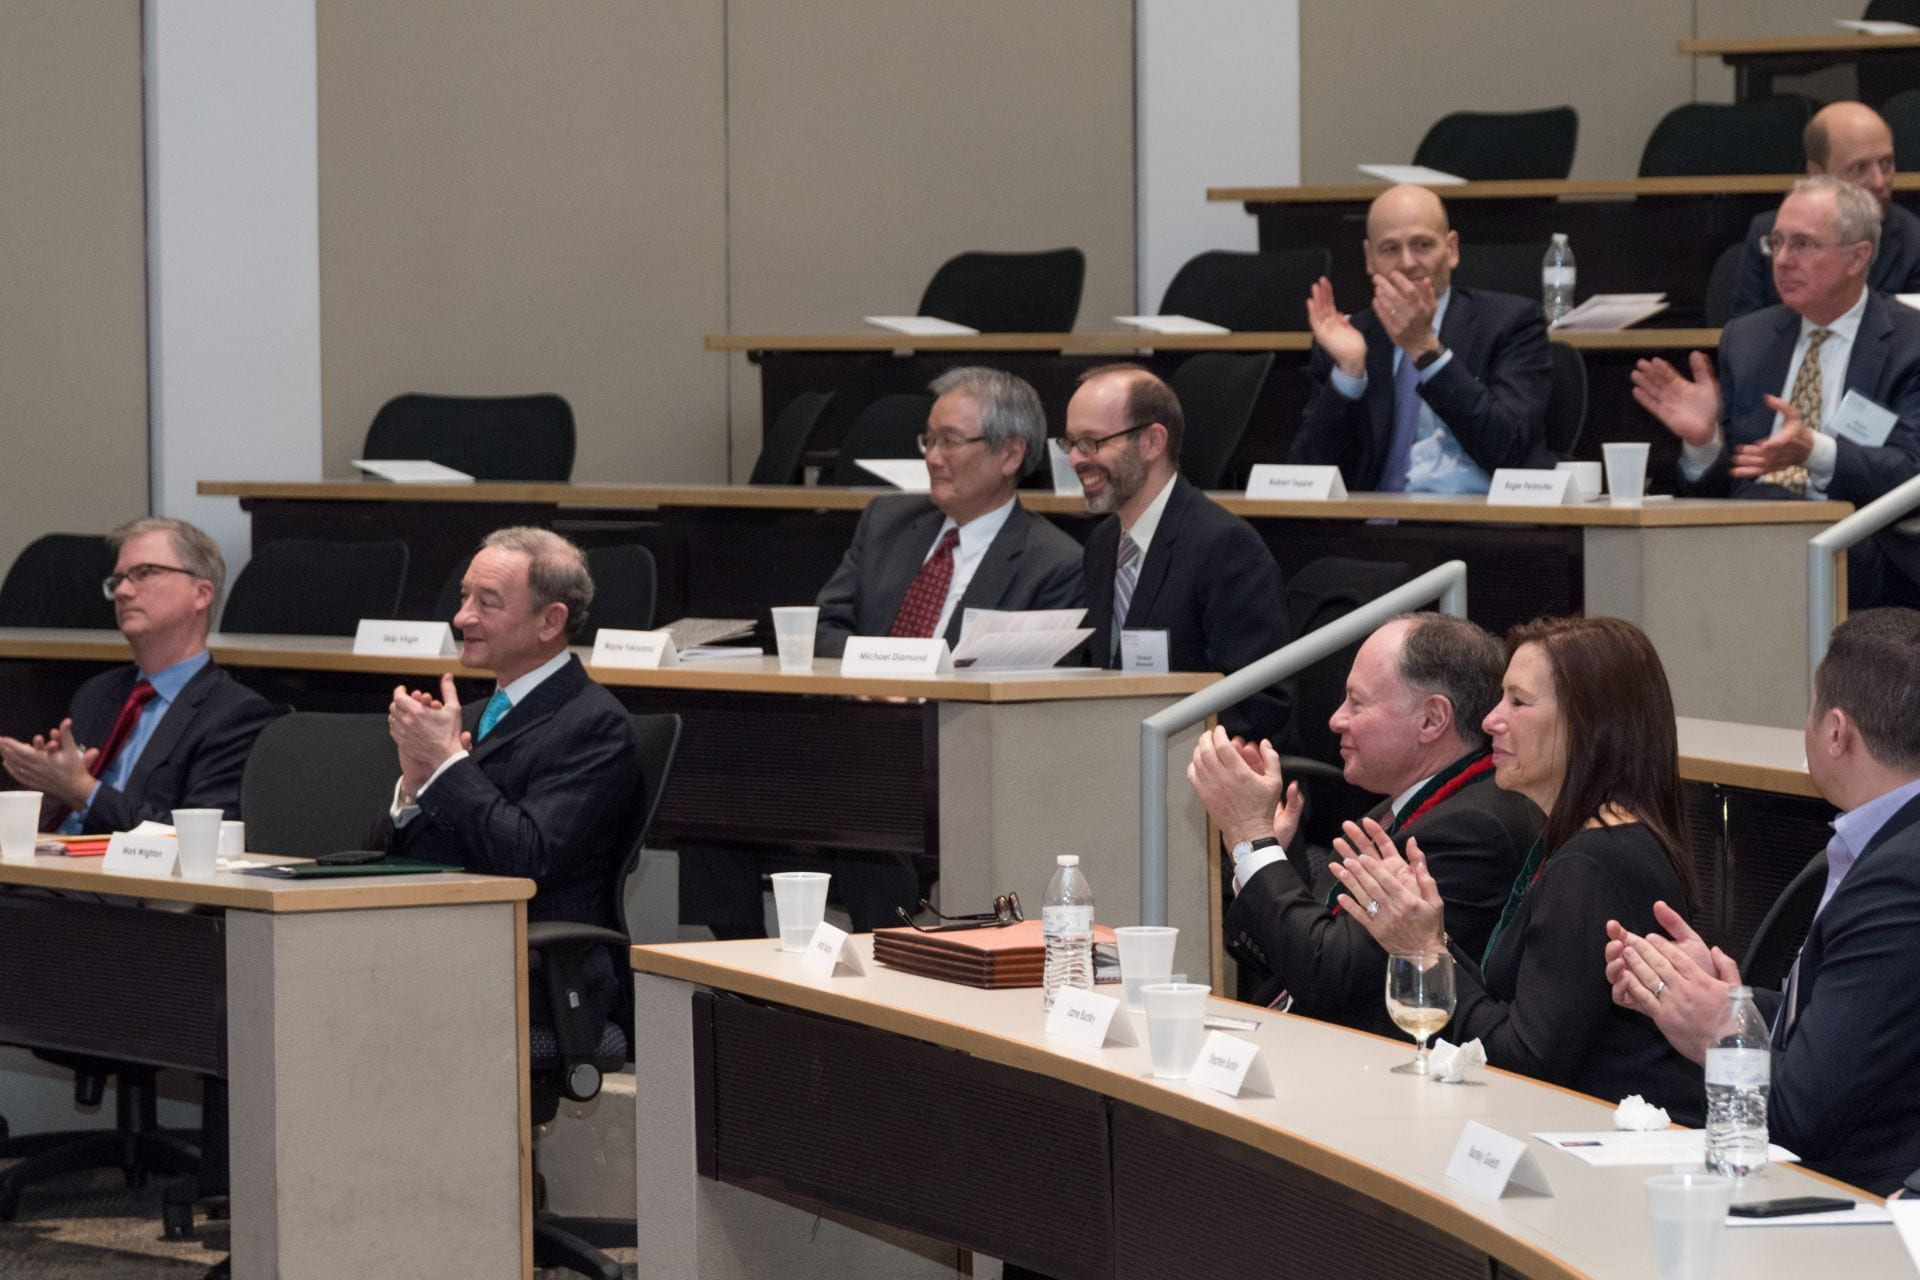 Distinguished guests applaud Dr. Schreiber's presentation on novel advances in cancer immunotherapy.